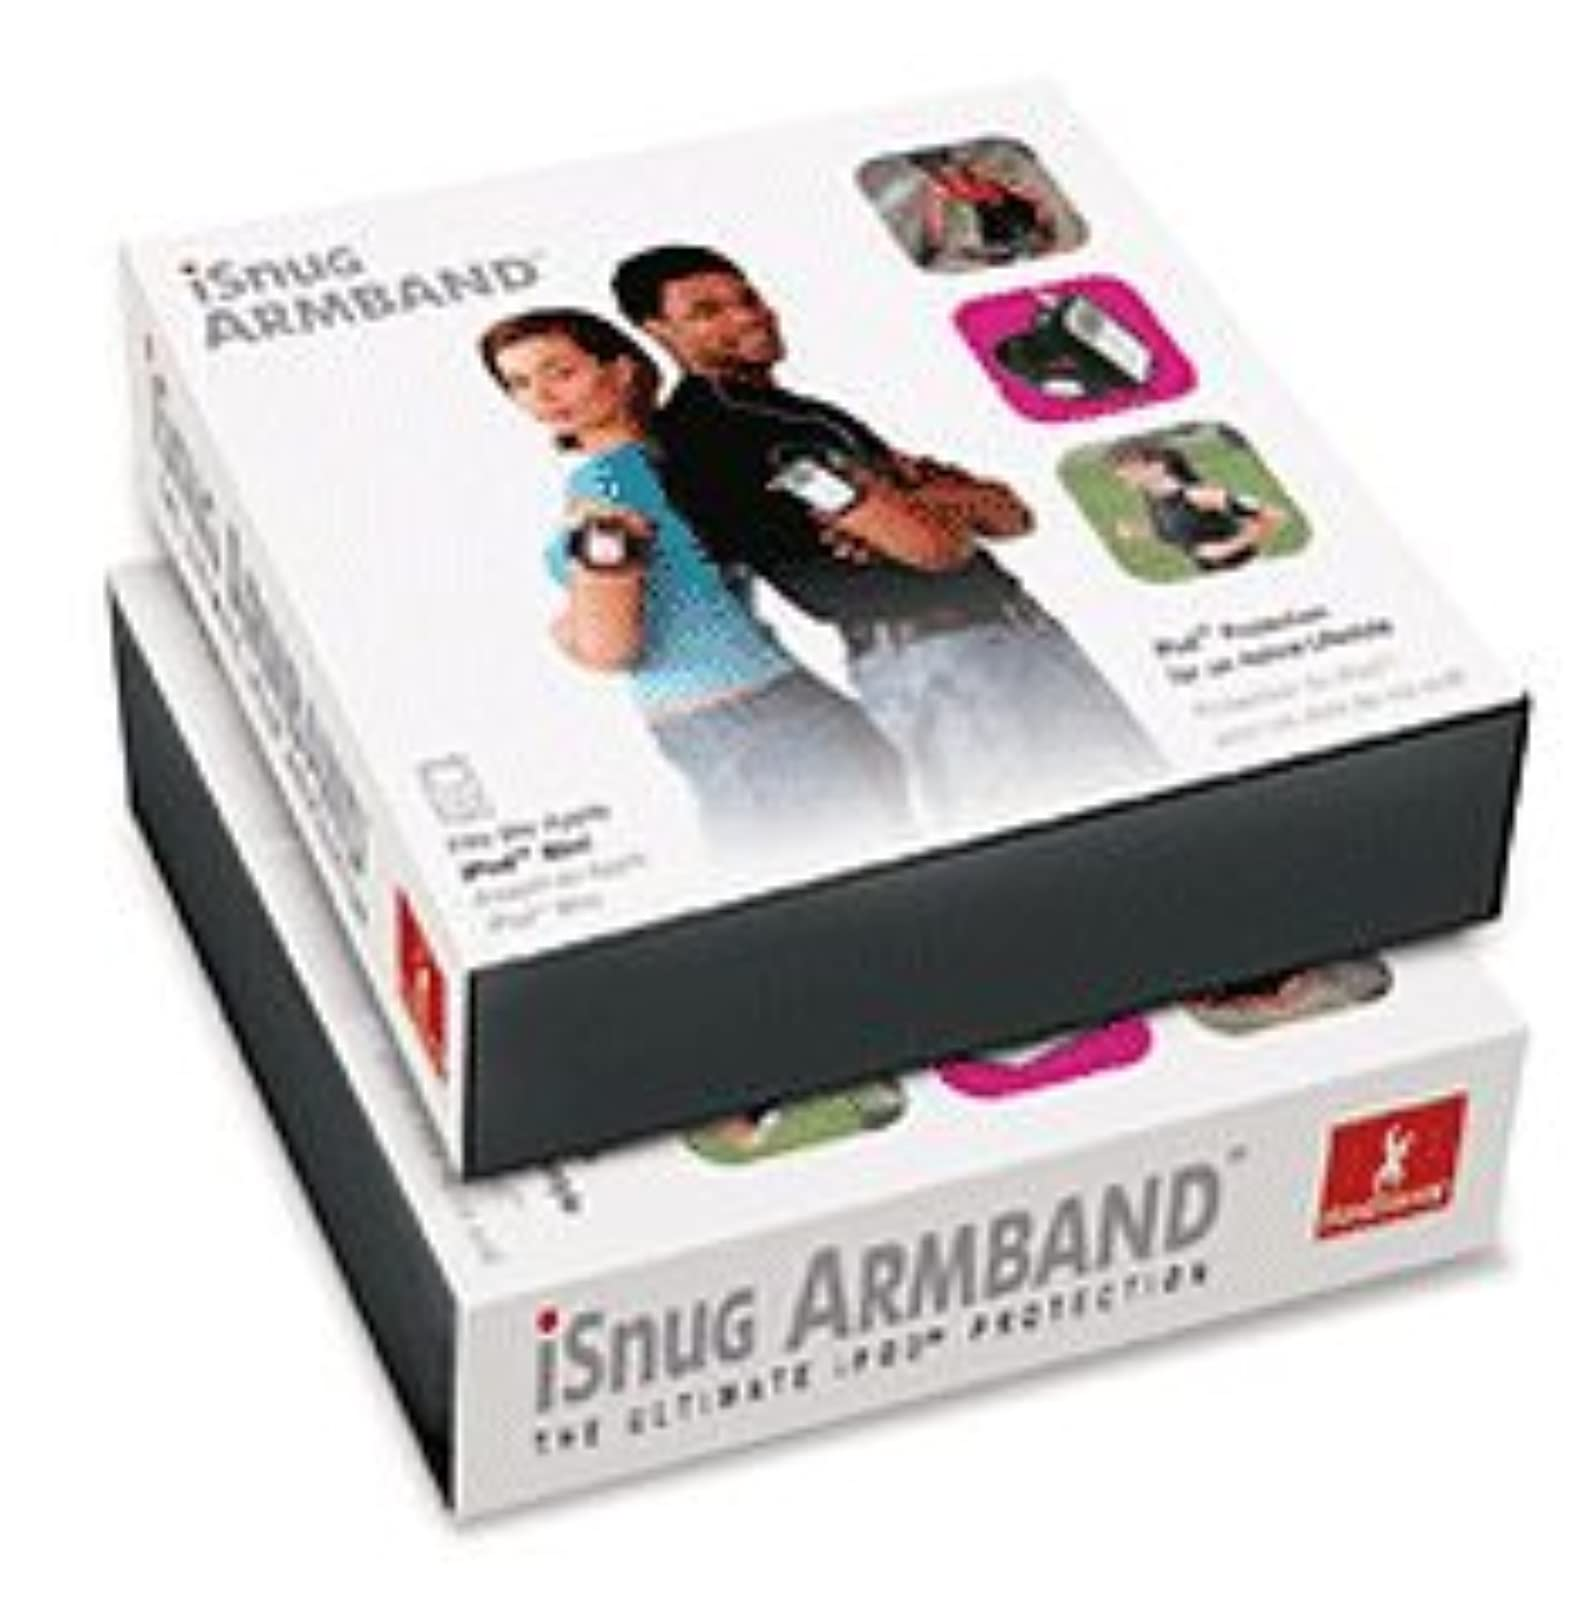 Isnug Armband For Nano And Classic